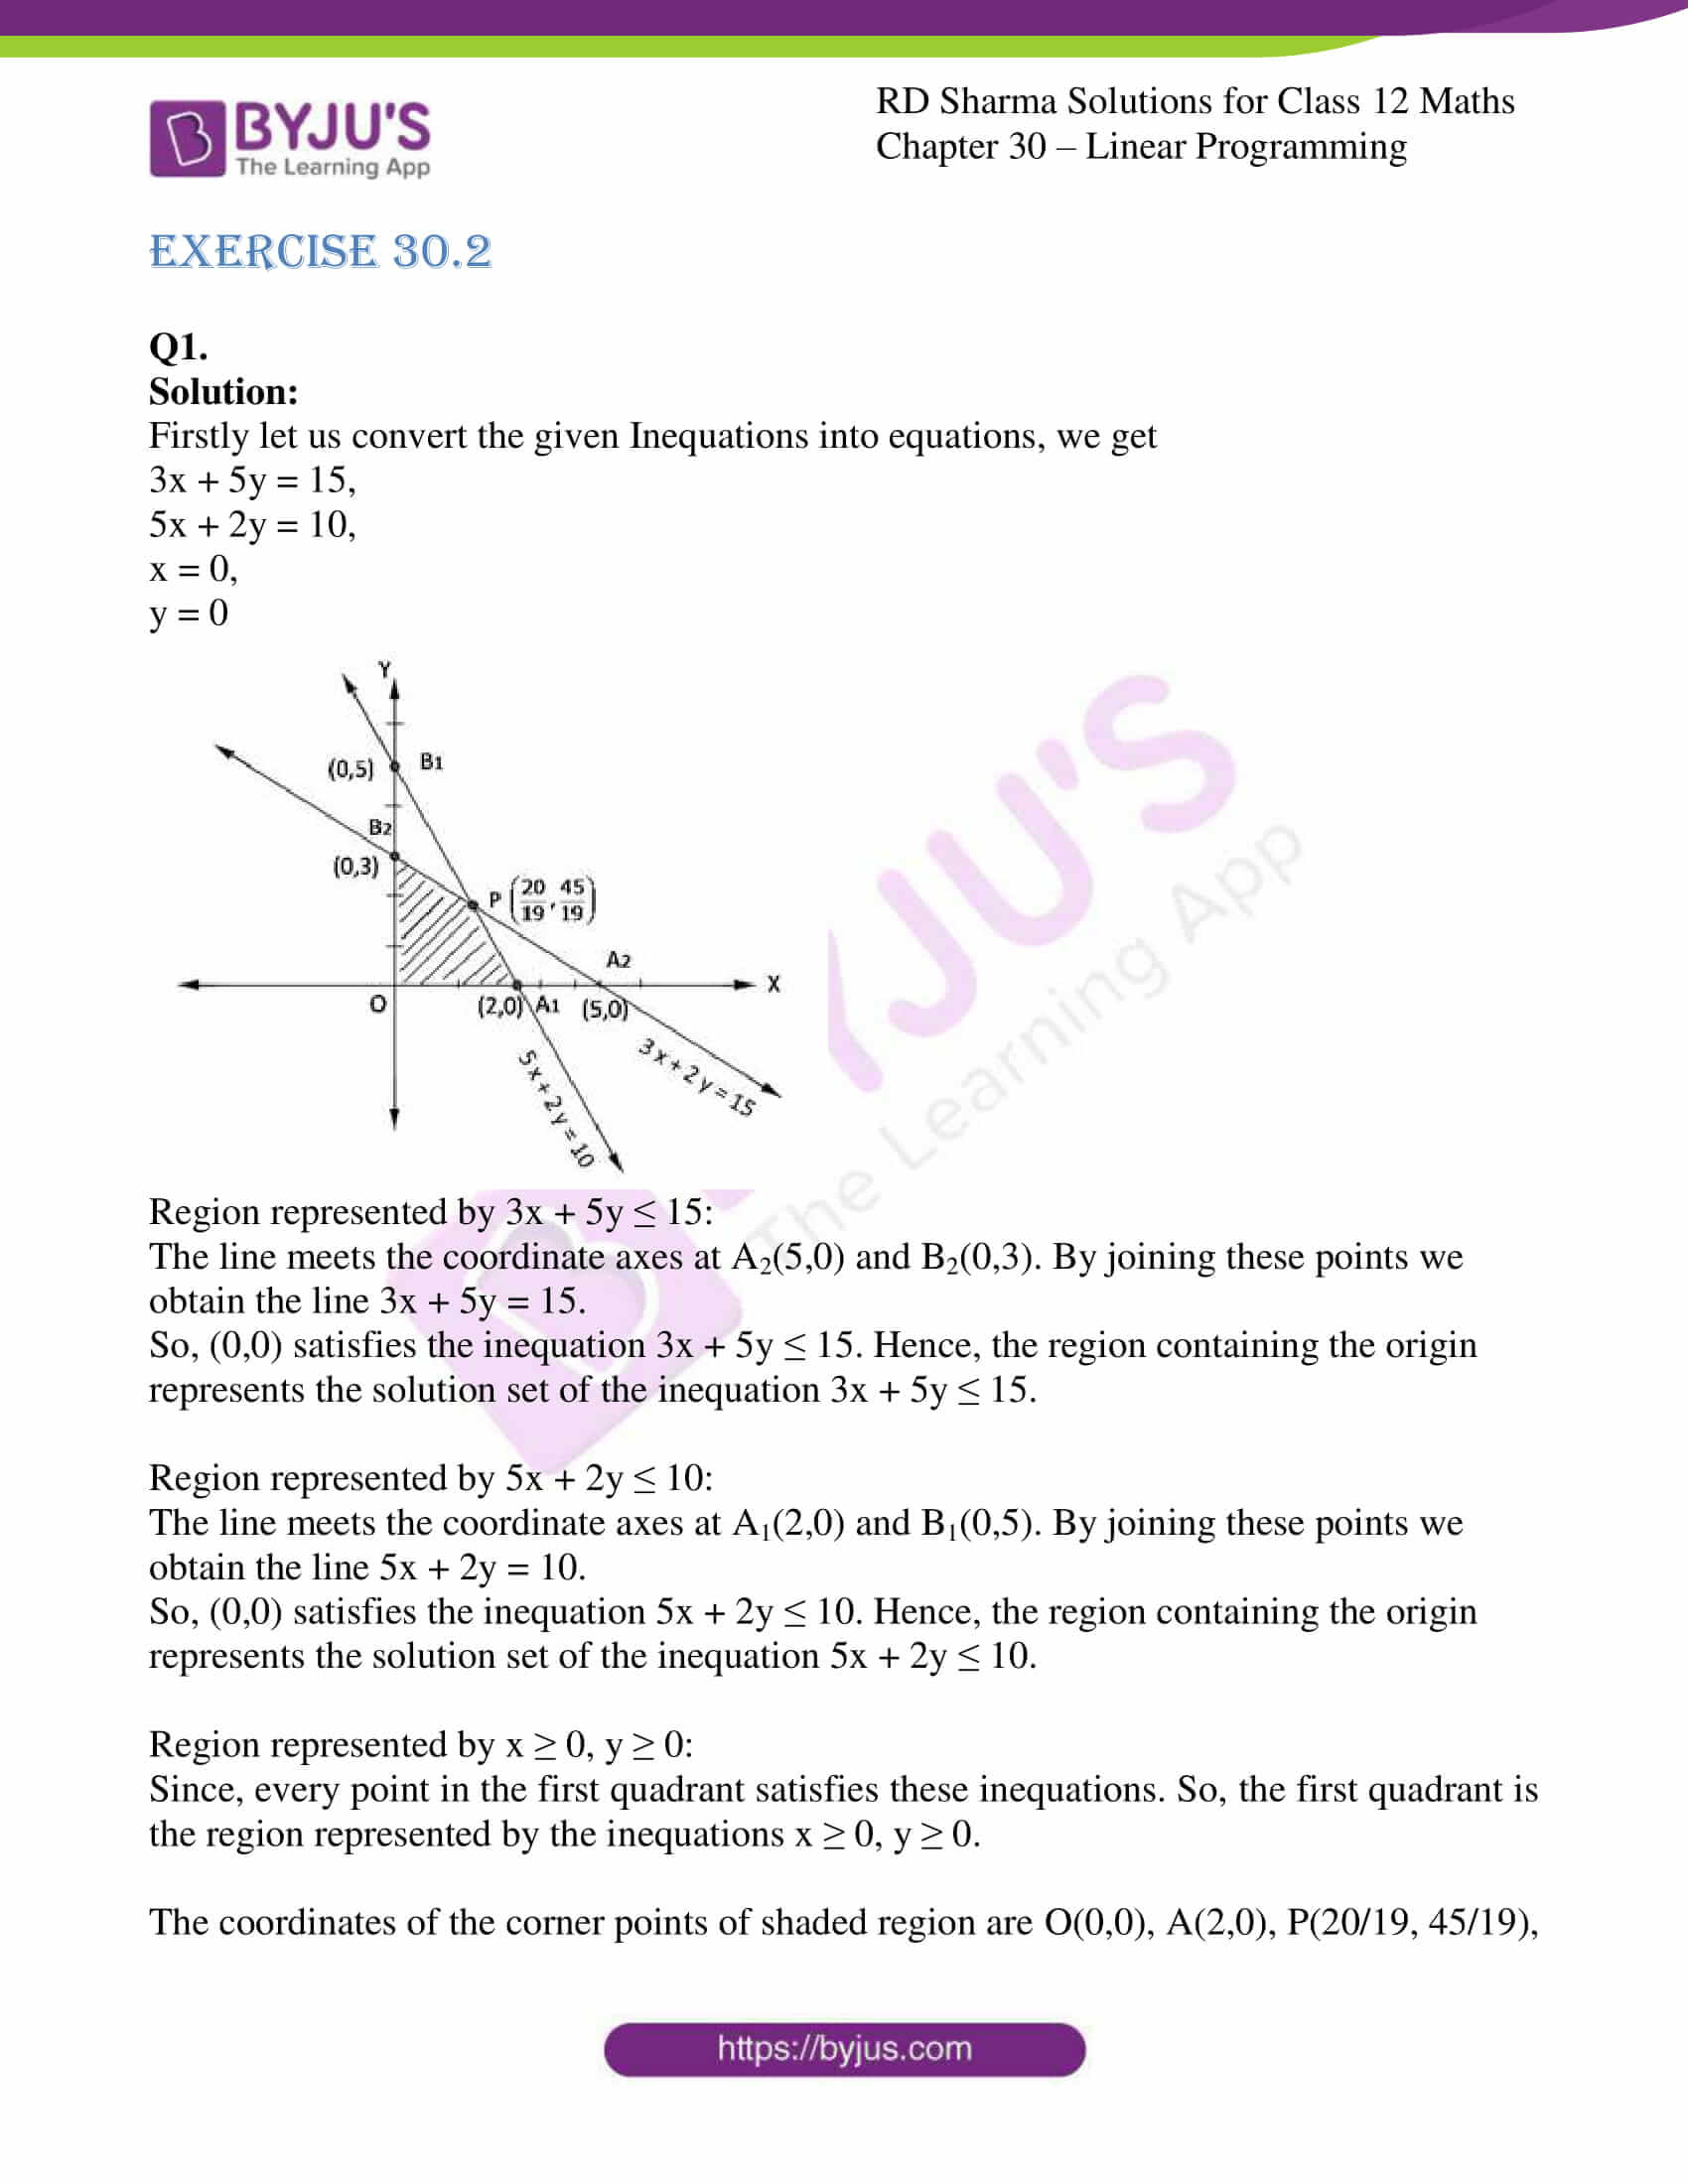 rd sharma solutions for class 12 maths chapter 30 ex 2 1